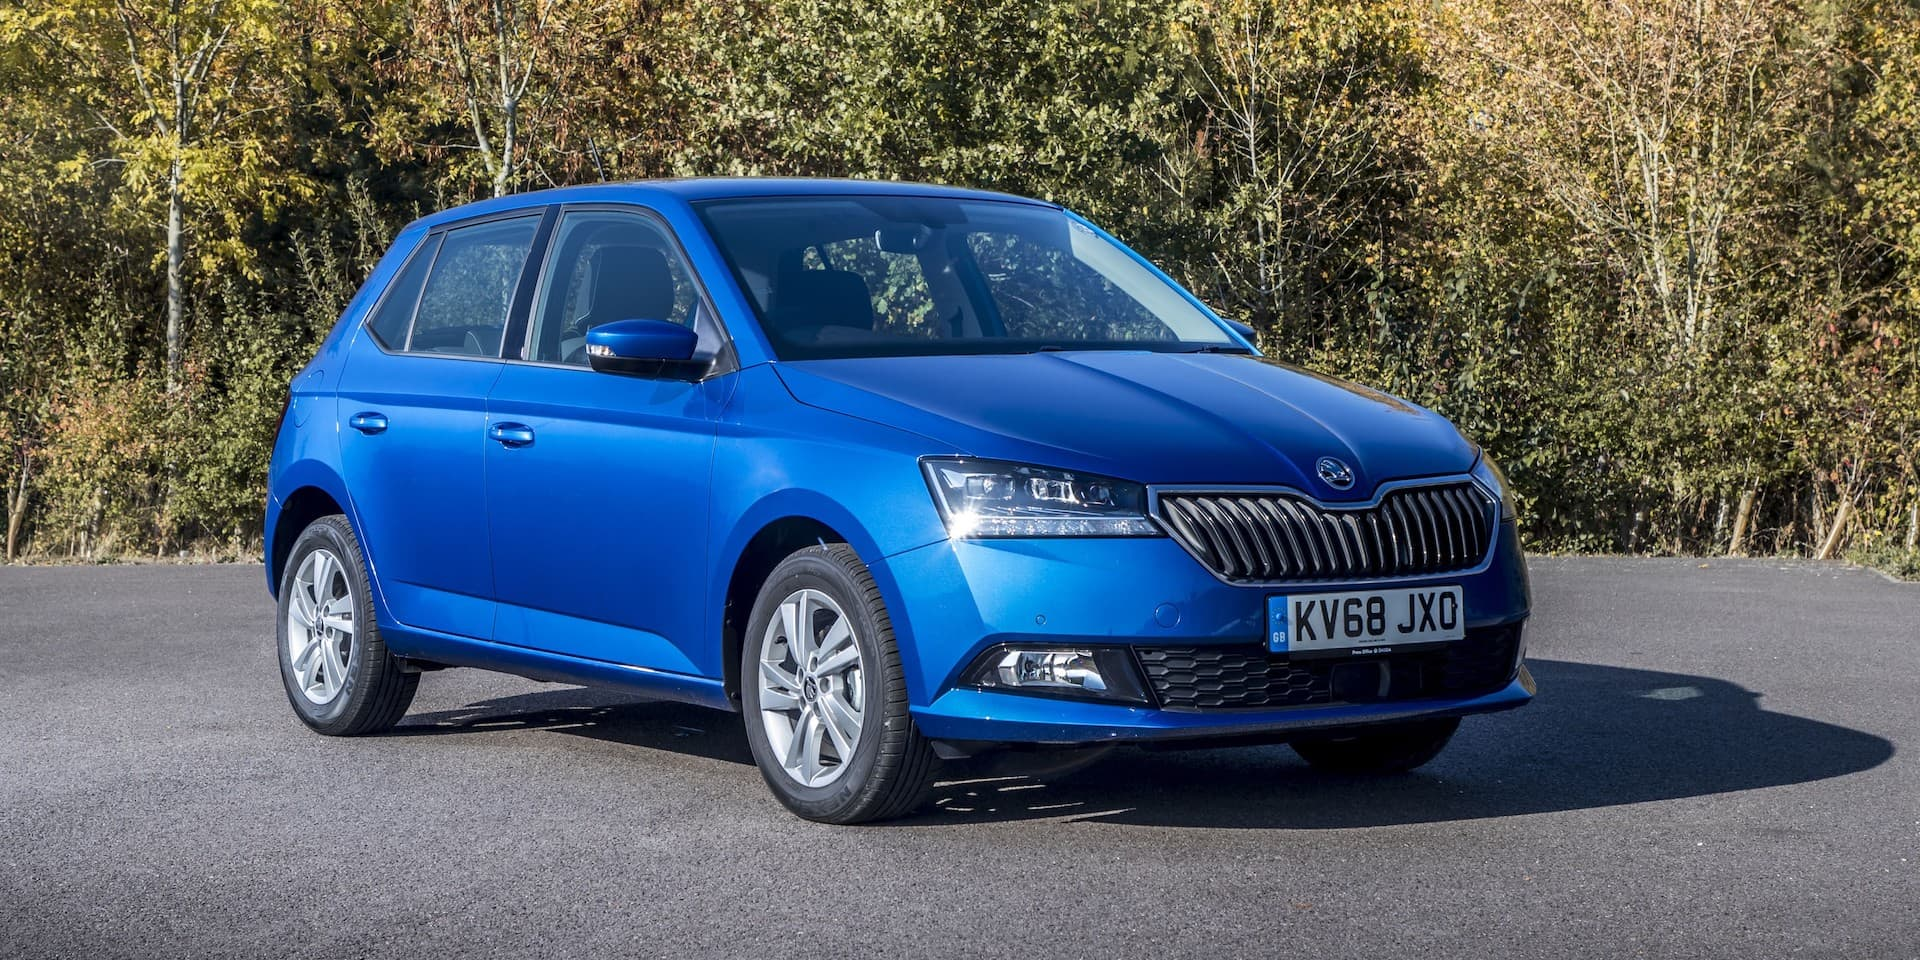 Skoda Fabia (2015 onwards) - Expert Rating